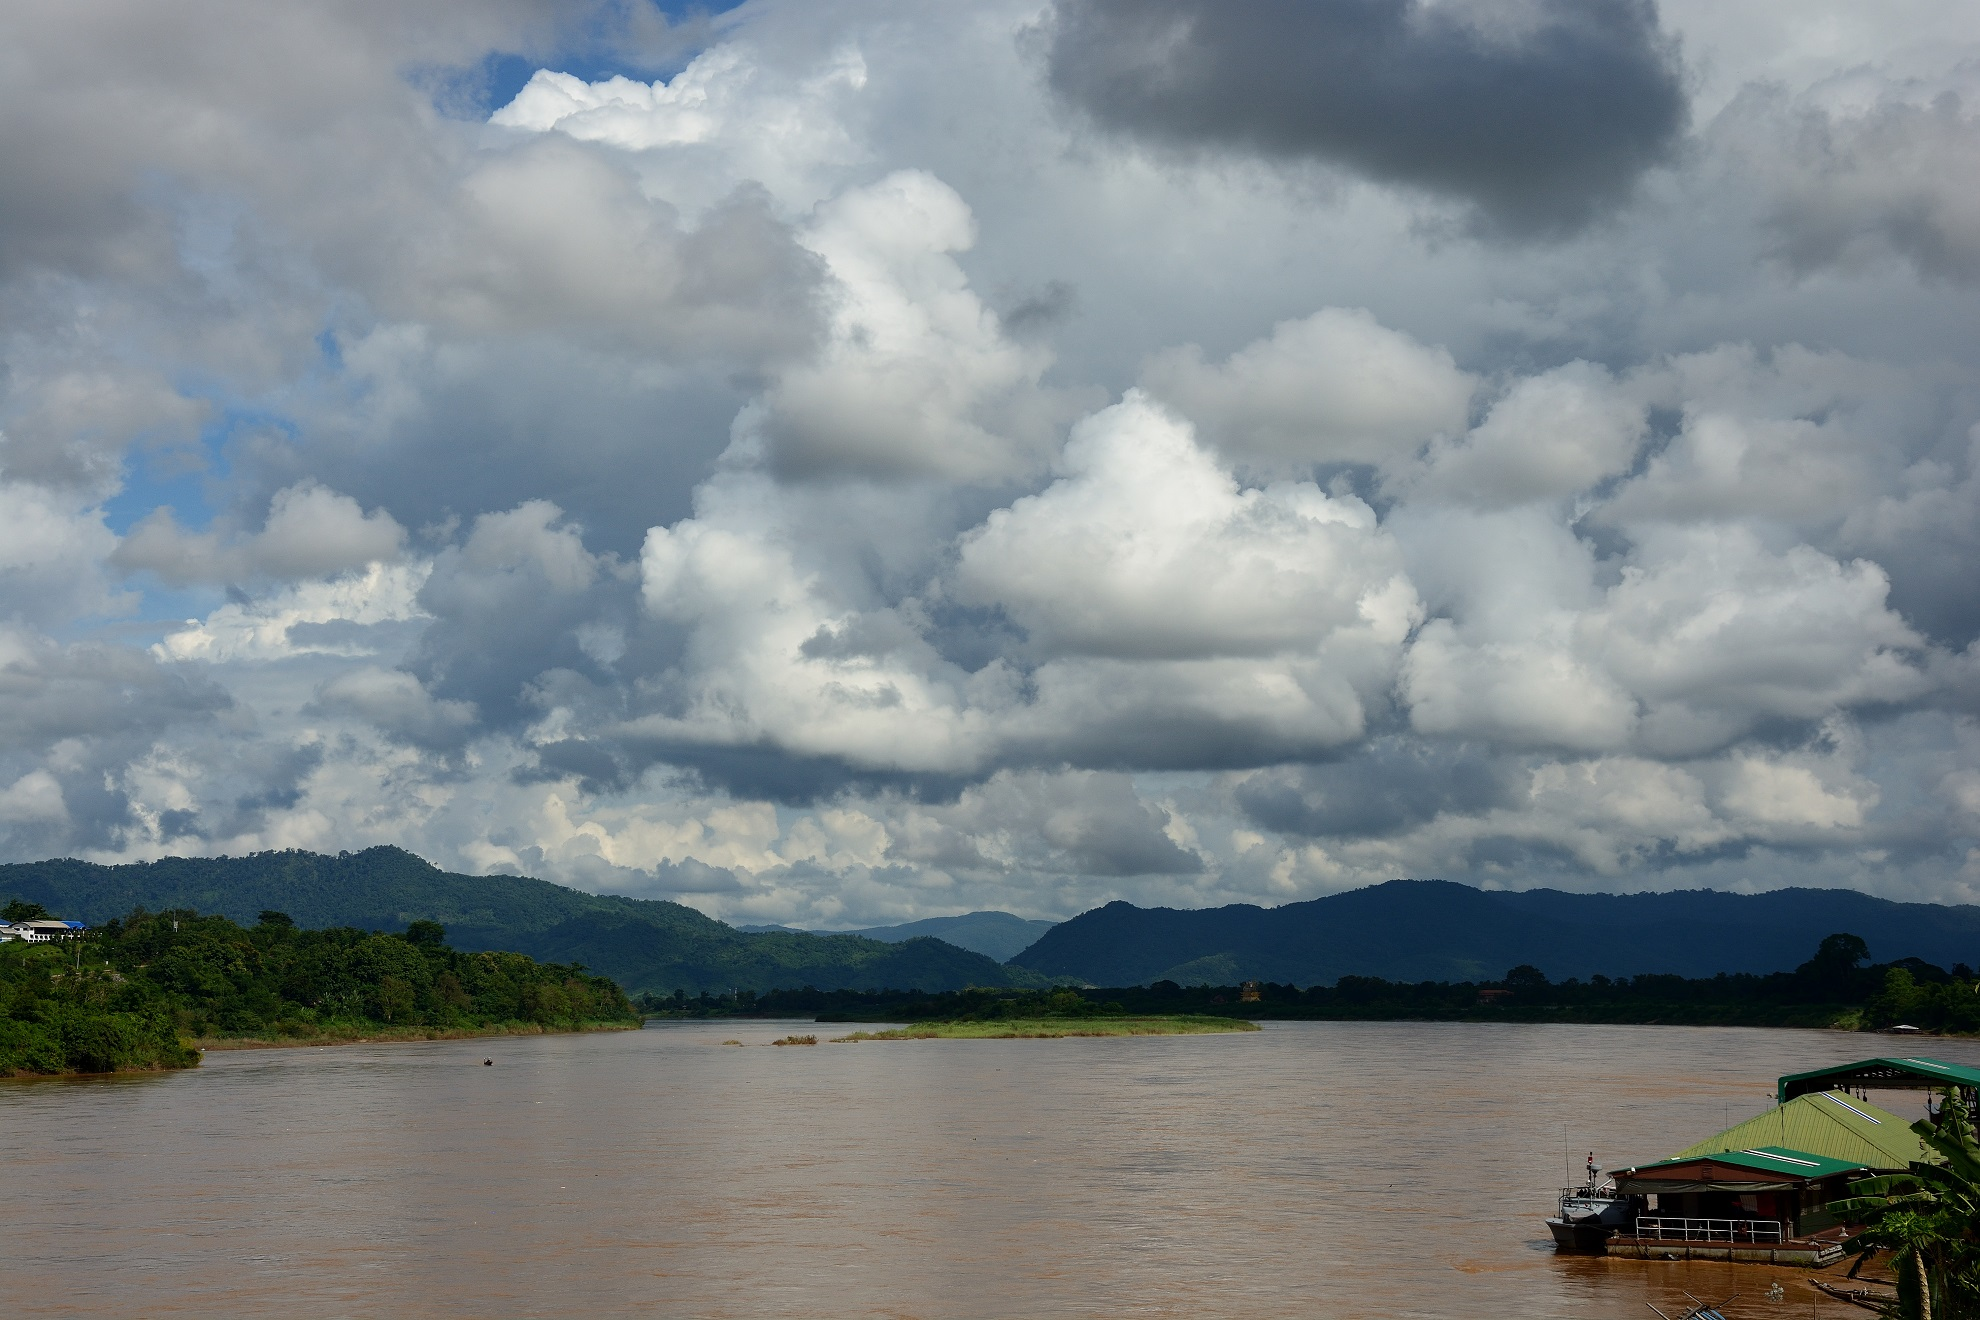 The Mekong with Laos on the other side